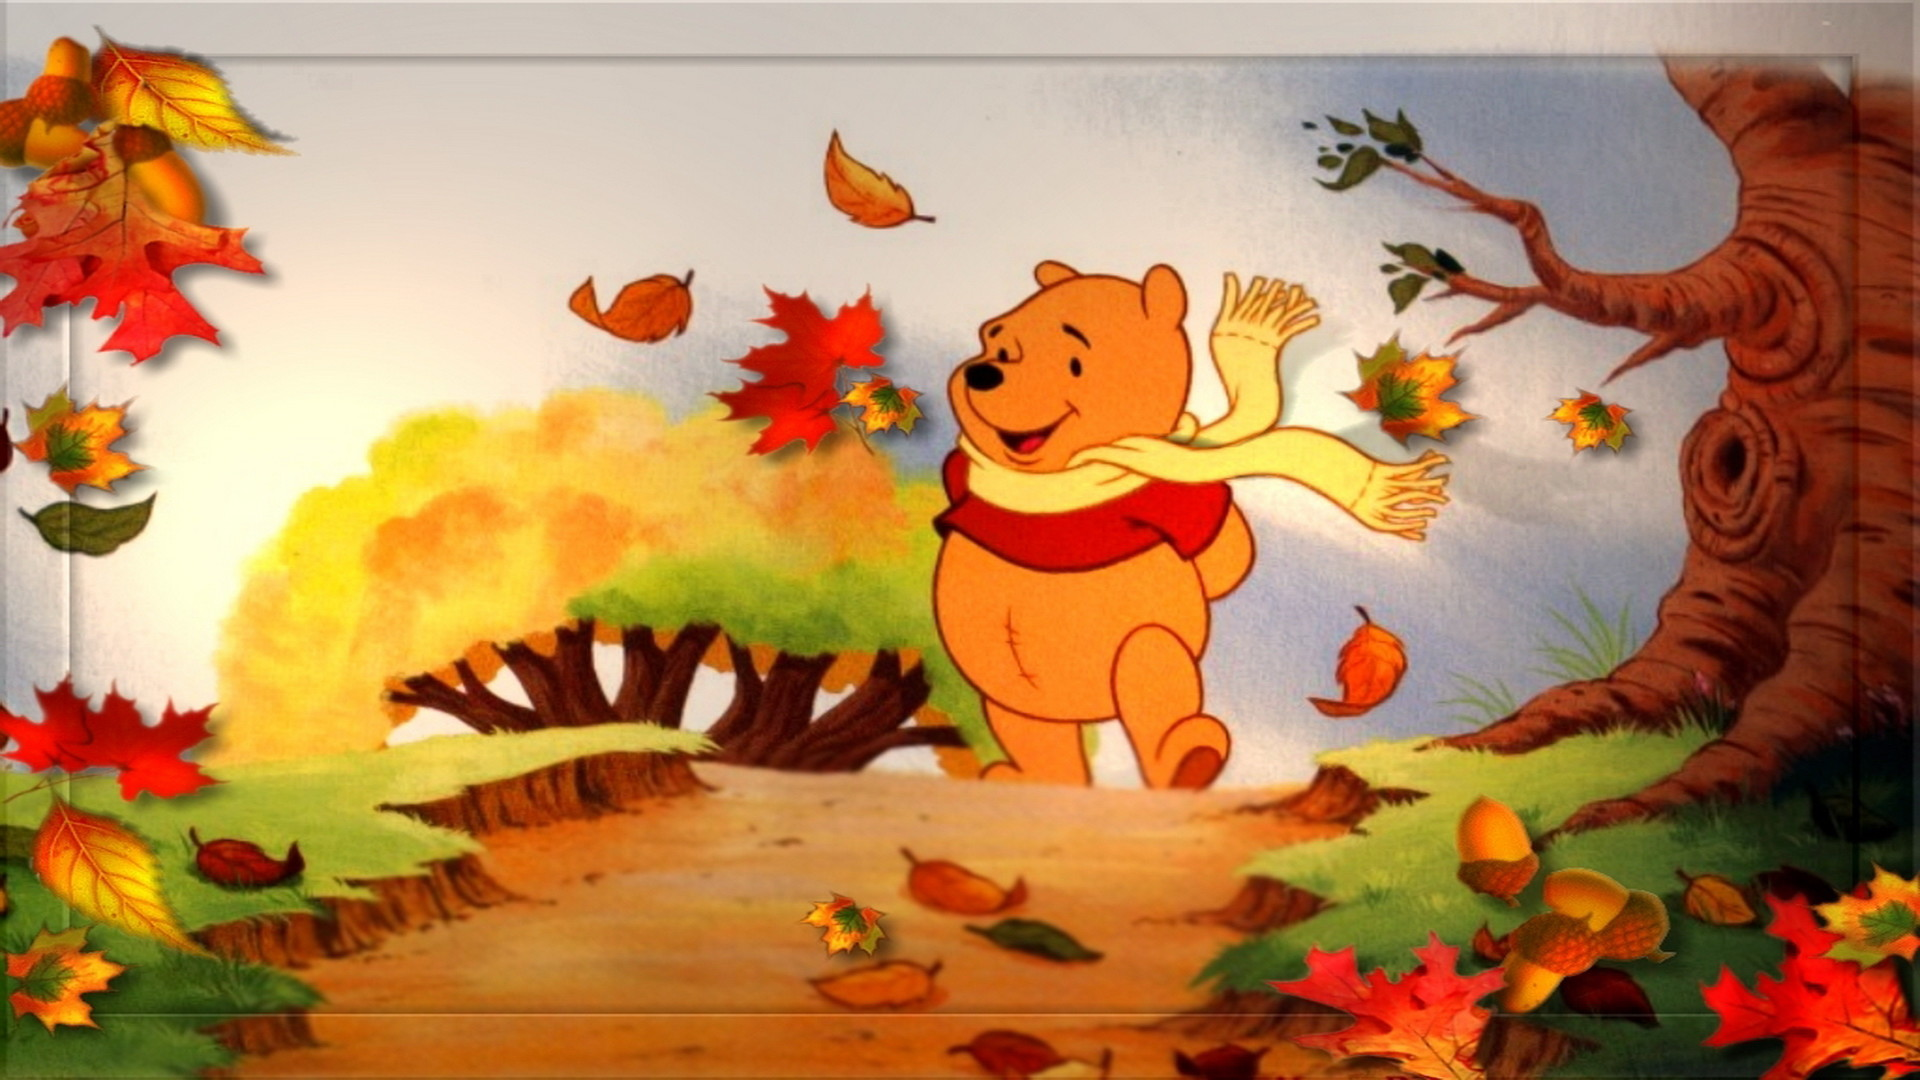 Disney Thanksgiving Wallpaper for Computer 74 images 1920x1080